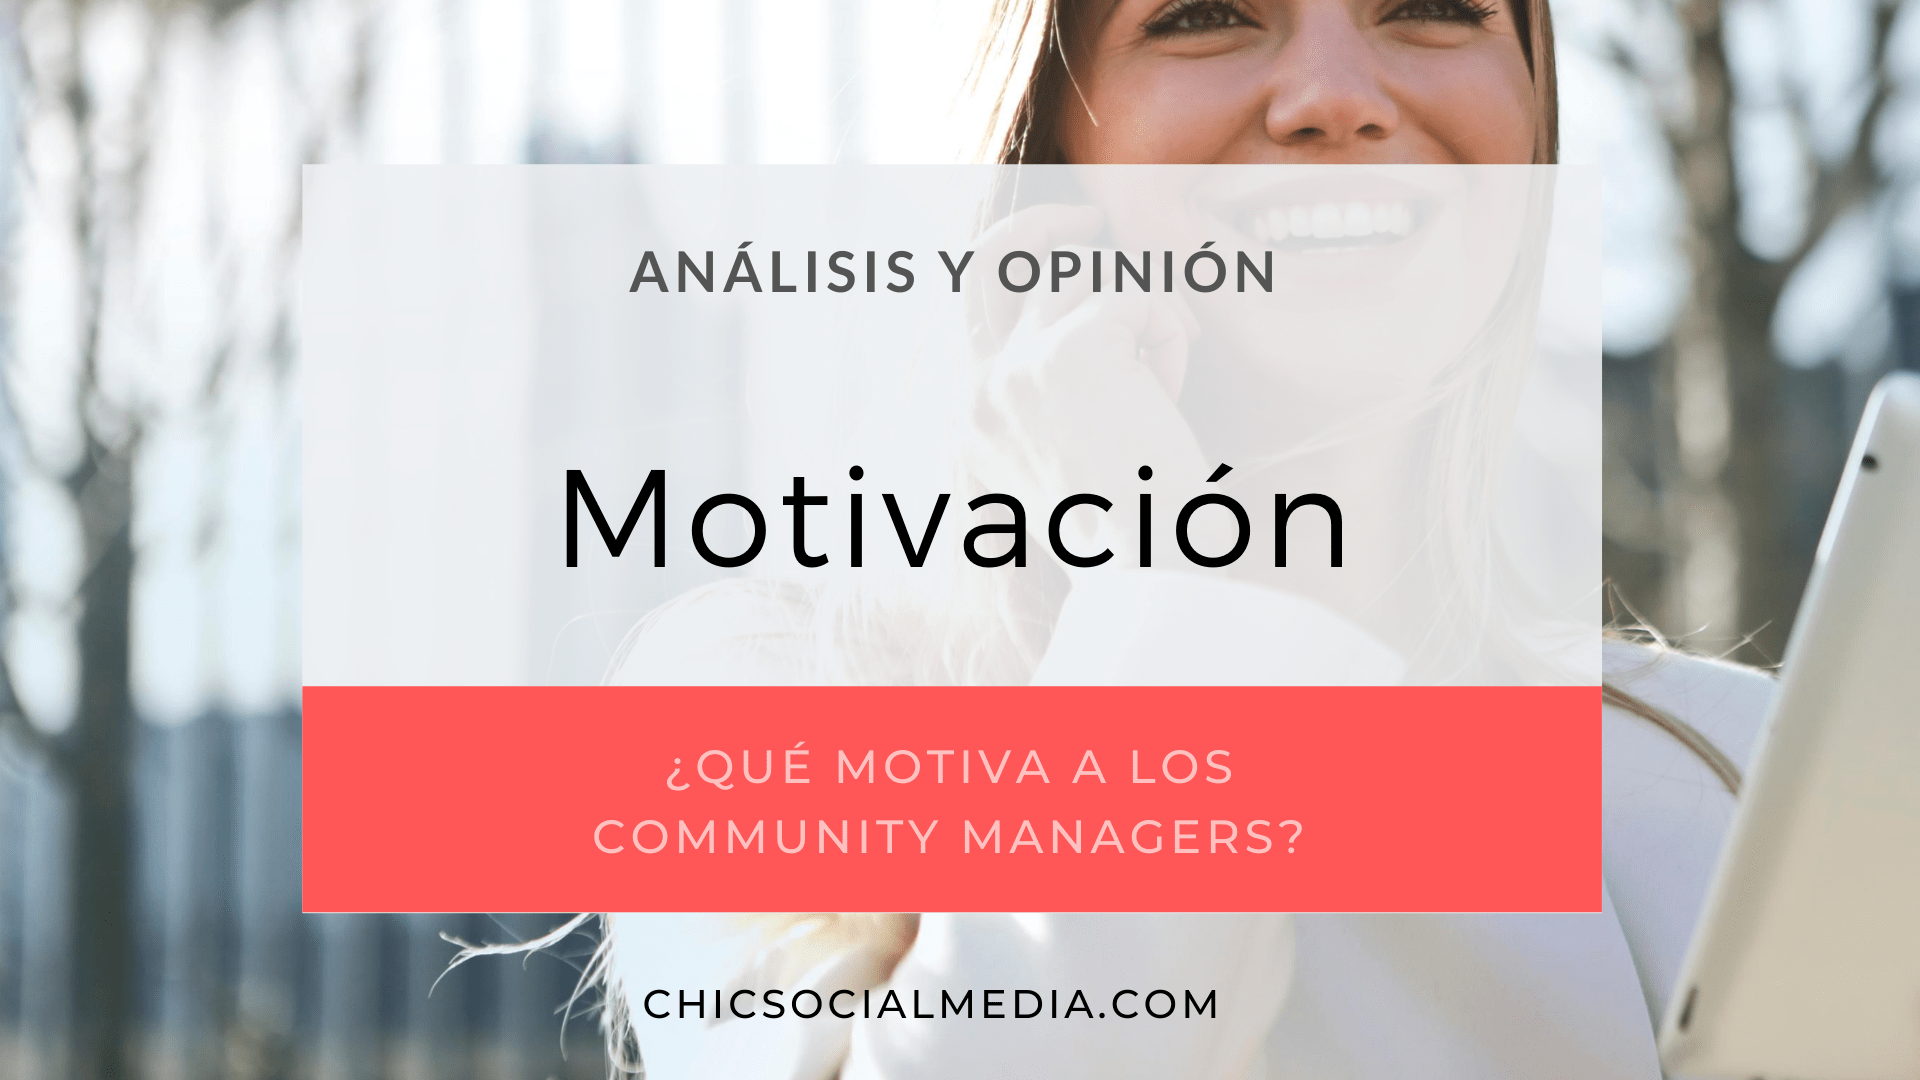 chicsocialmedia_blog_analisis_opinion_Motivacion_Community_Manager